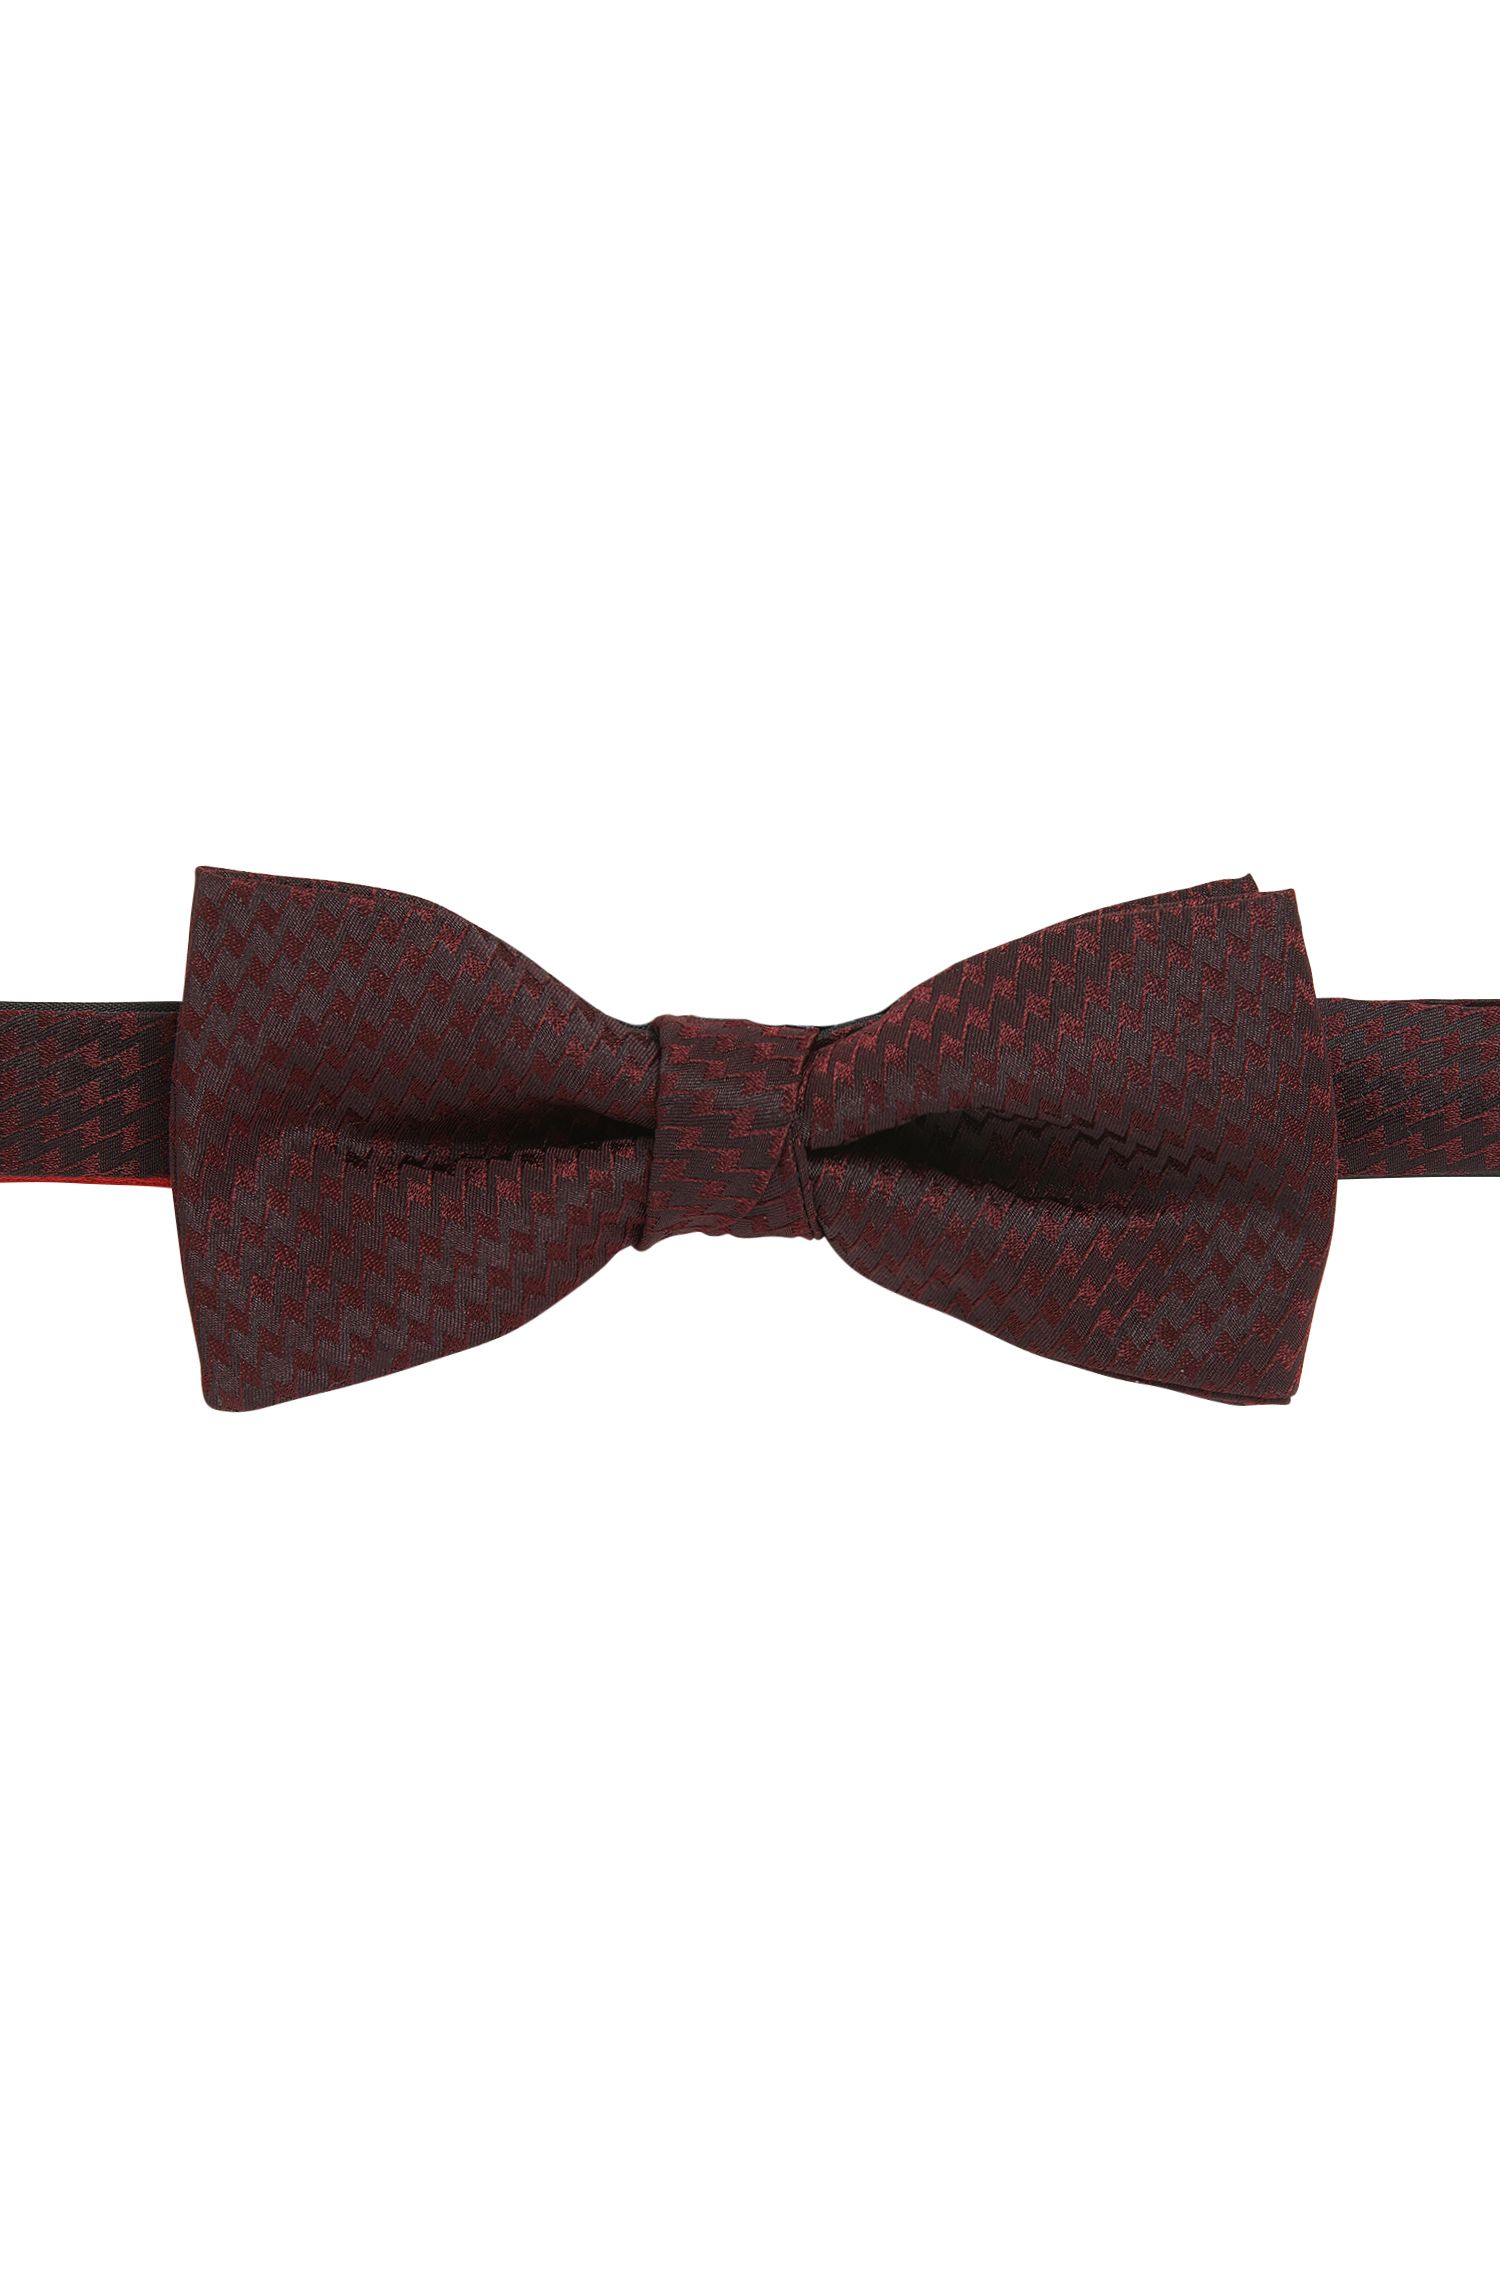 Zig Zag Silk Bow Tie, Tied | Bow Tie Fashion